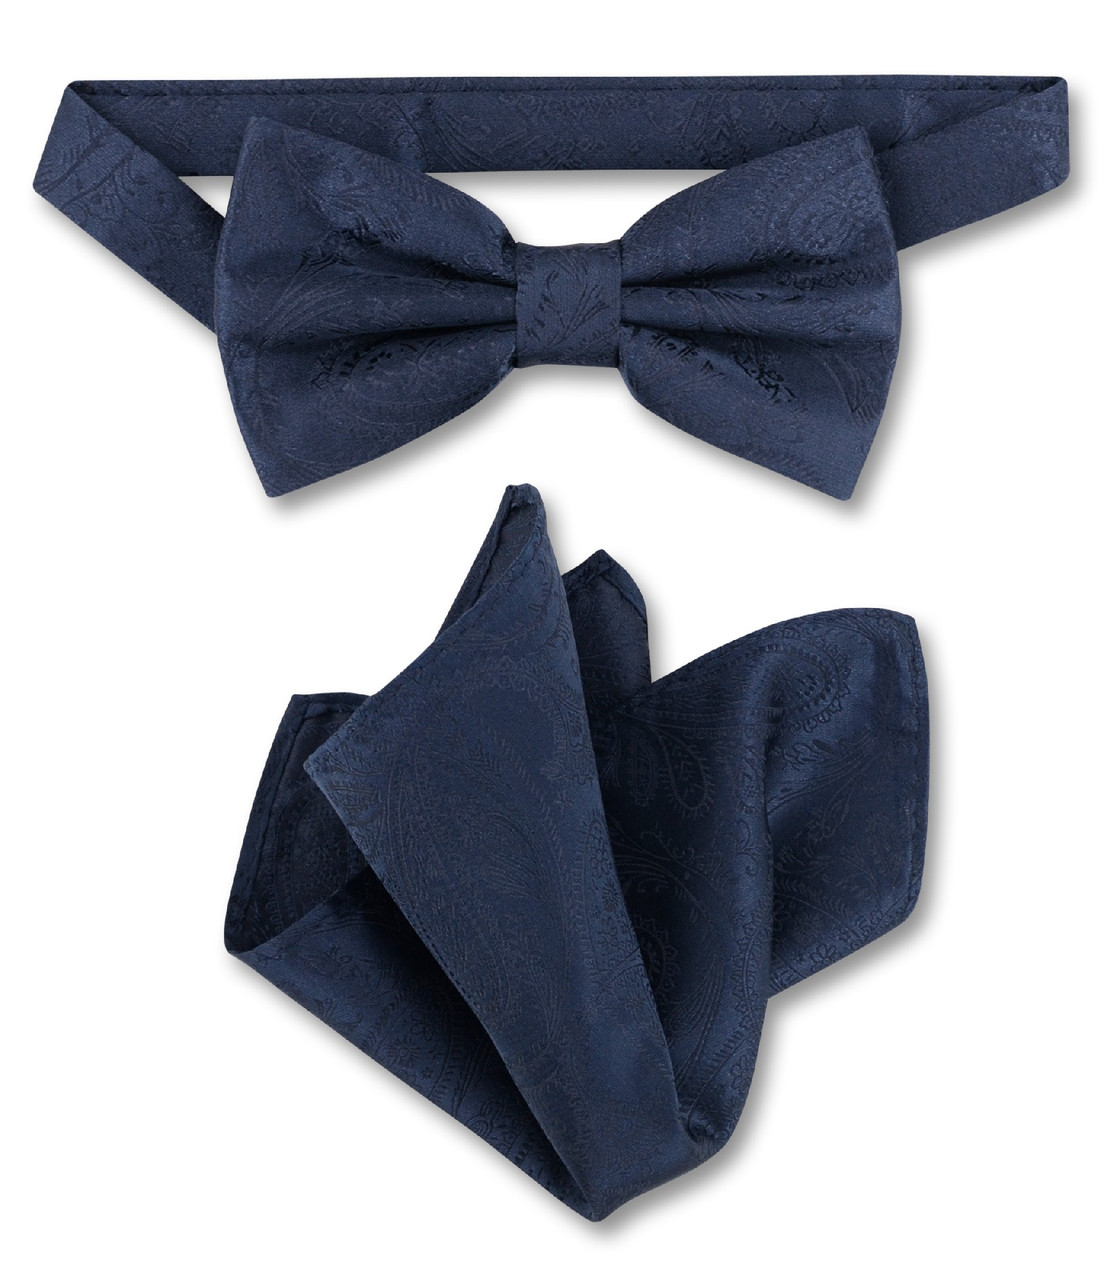 cab29a541934 Navy Blue Paisley Bow Tie And Handkerchief Set | Mens BowTie Set